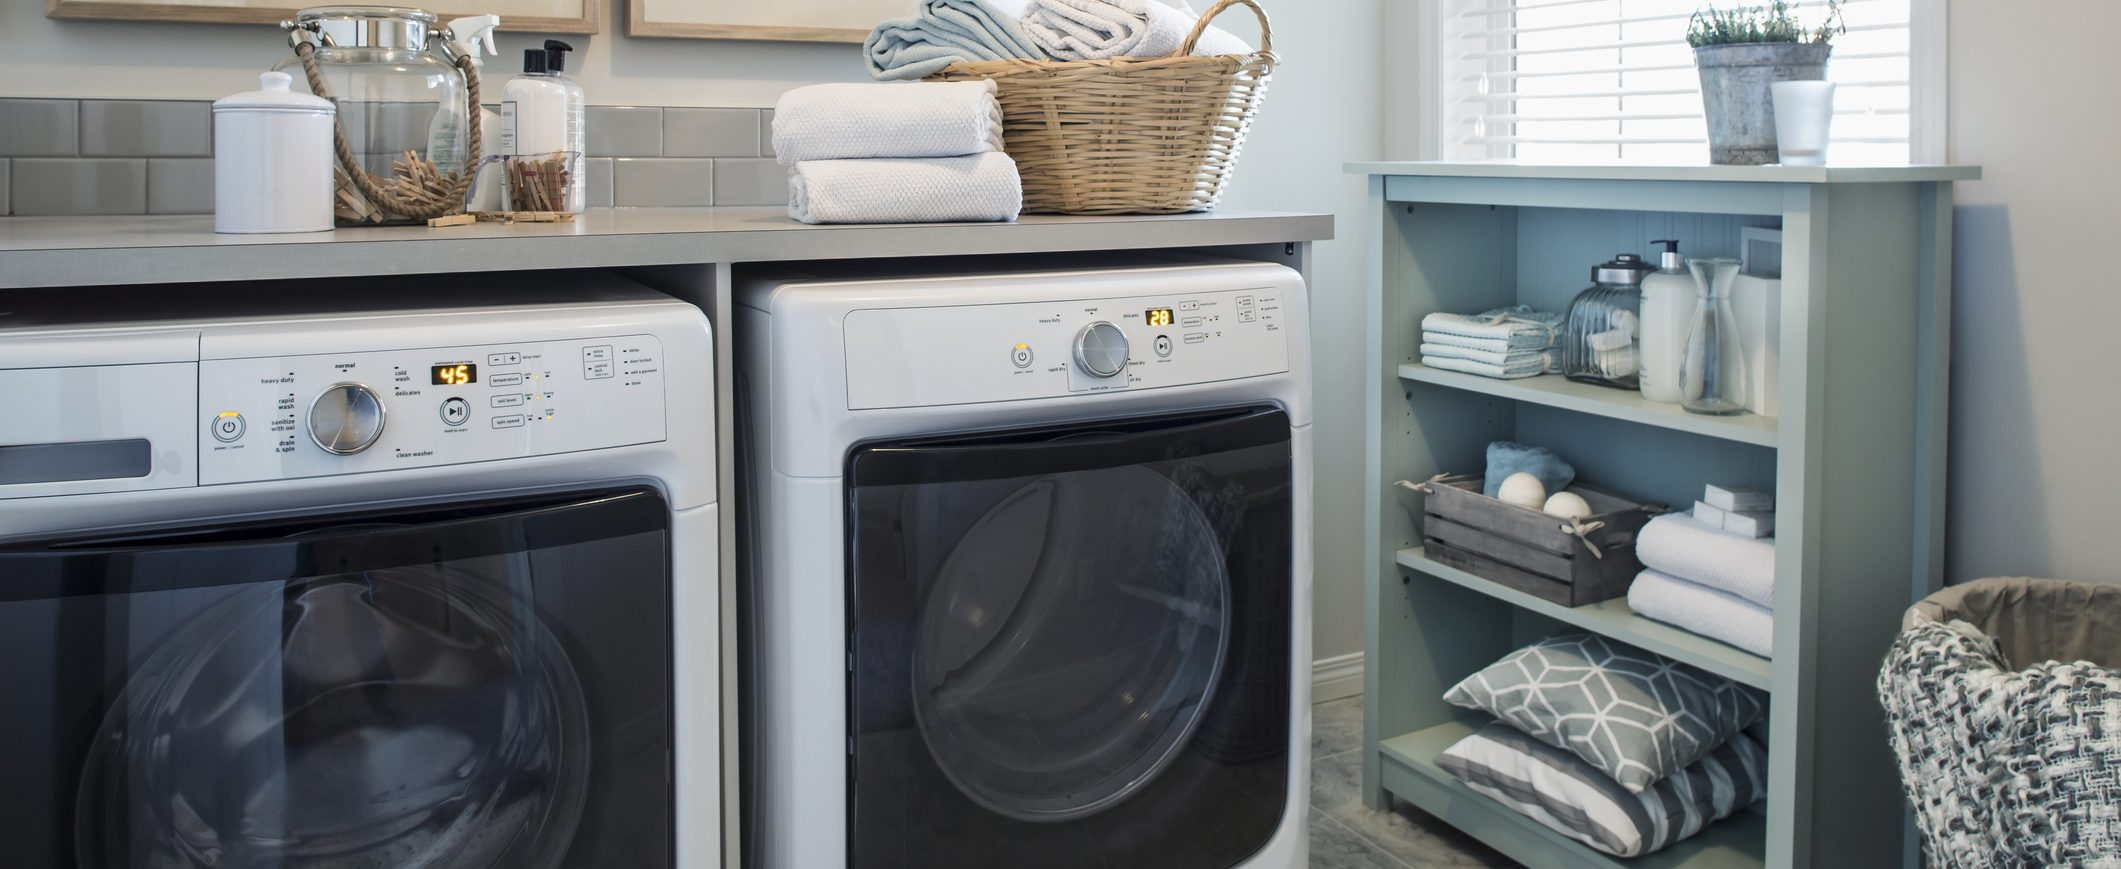 Buying a high-end appliance can help you save on repairs down the road